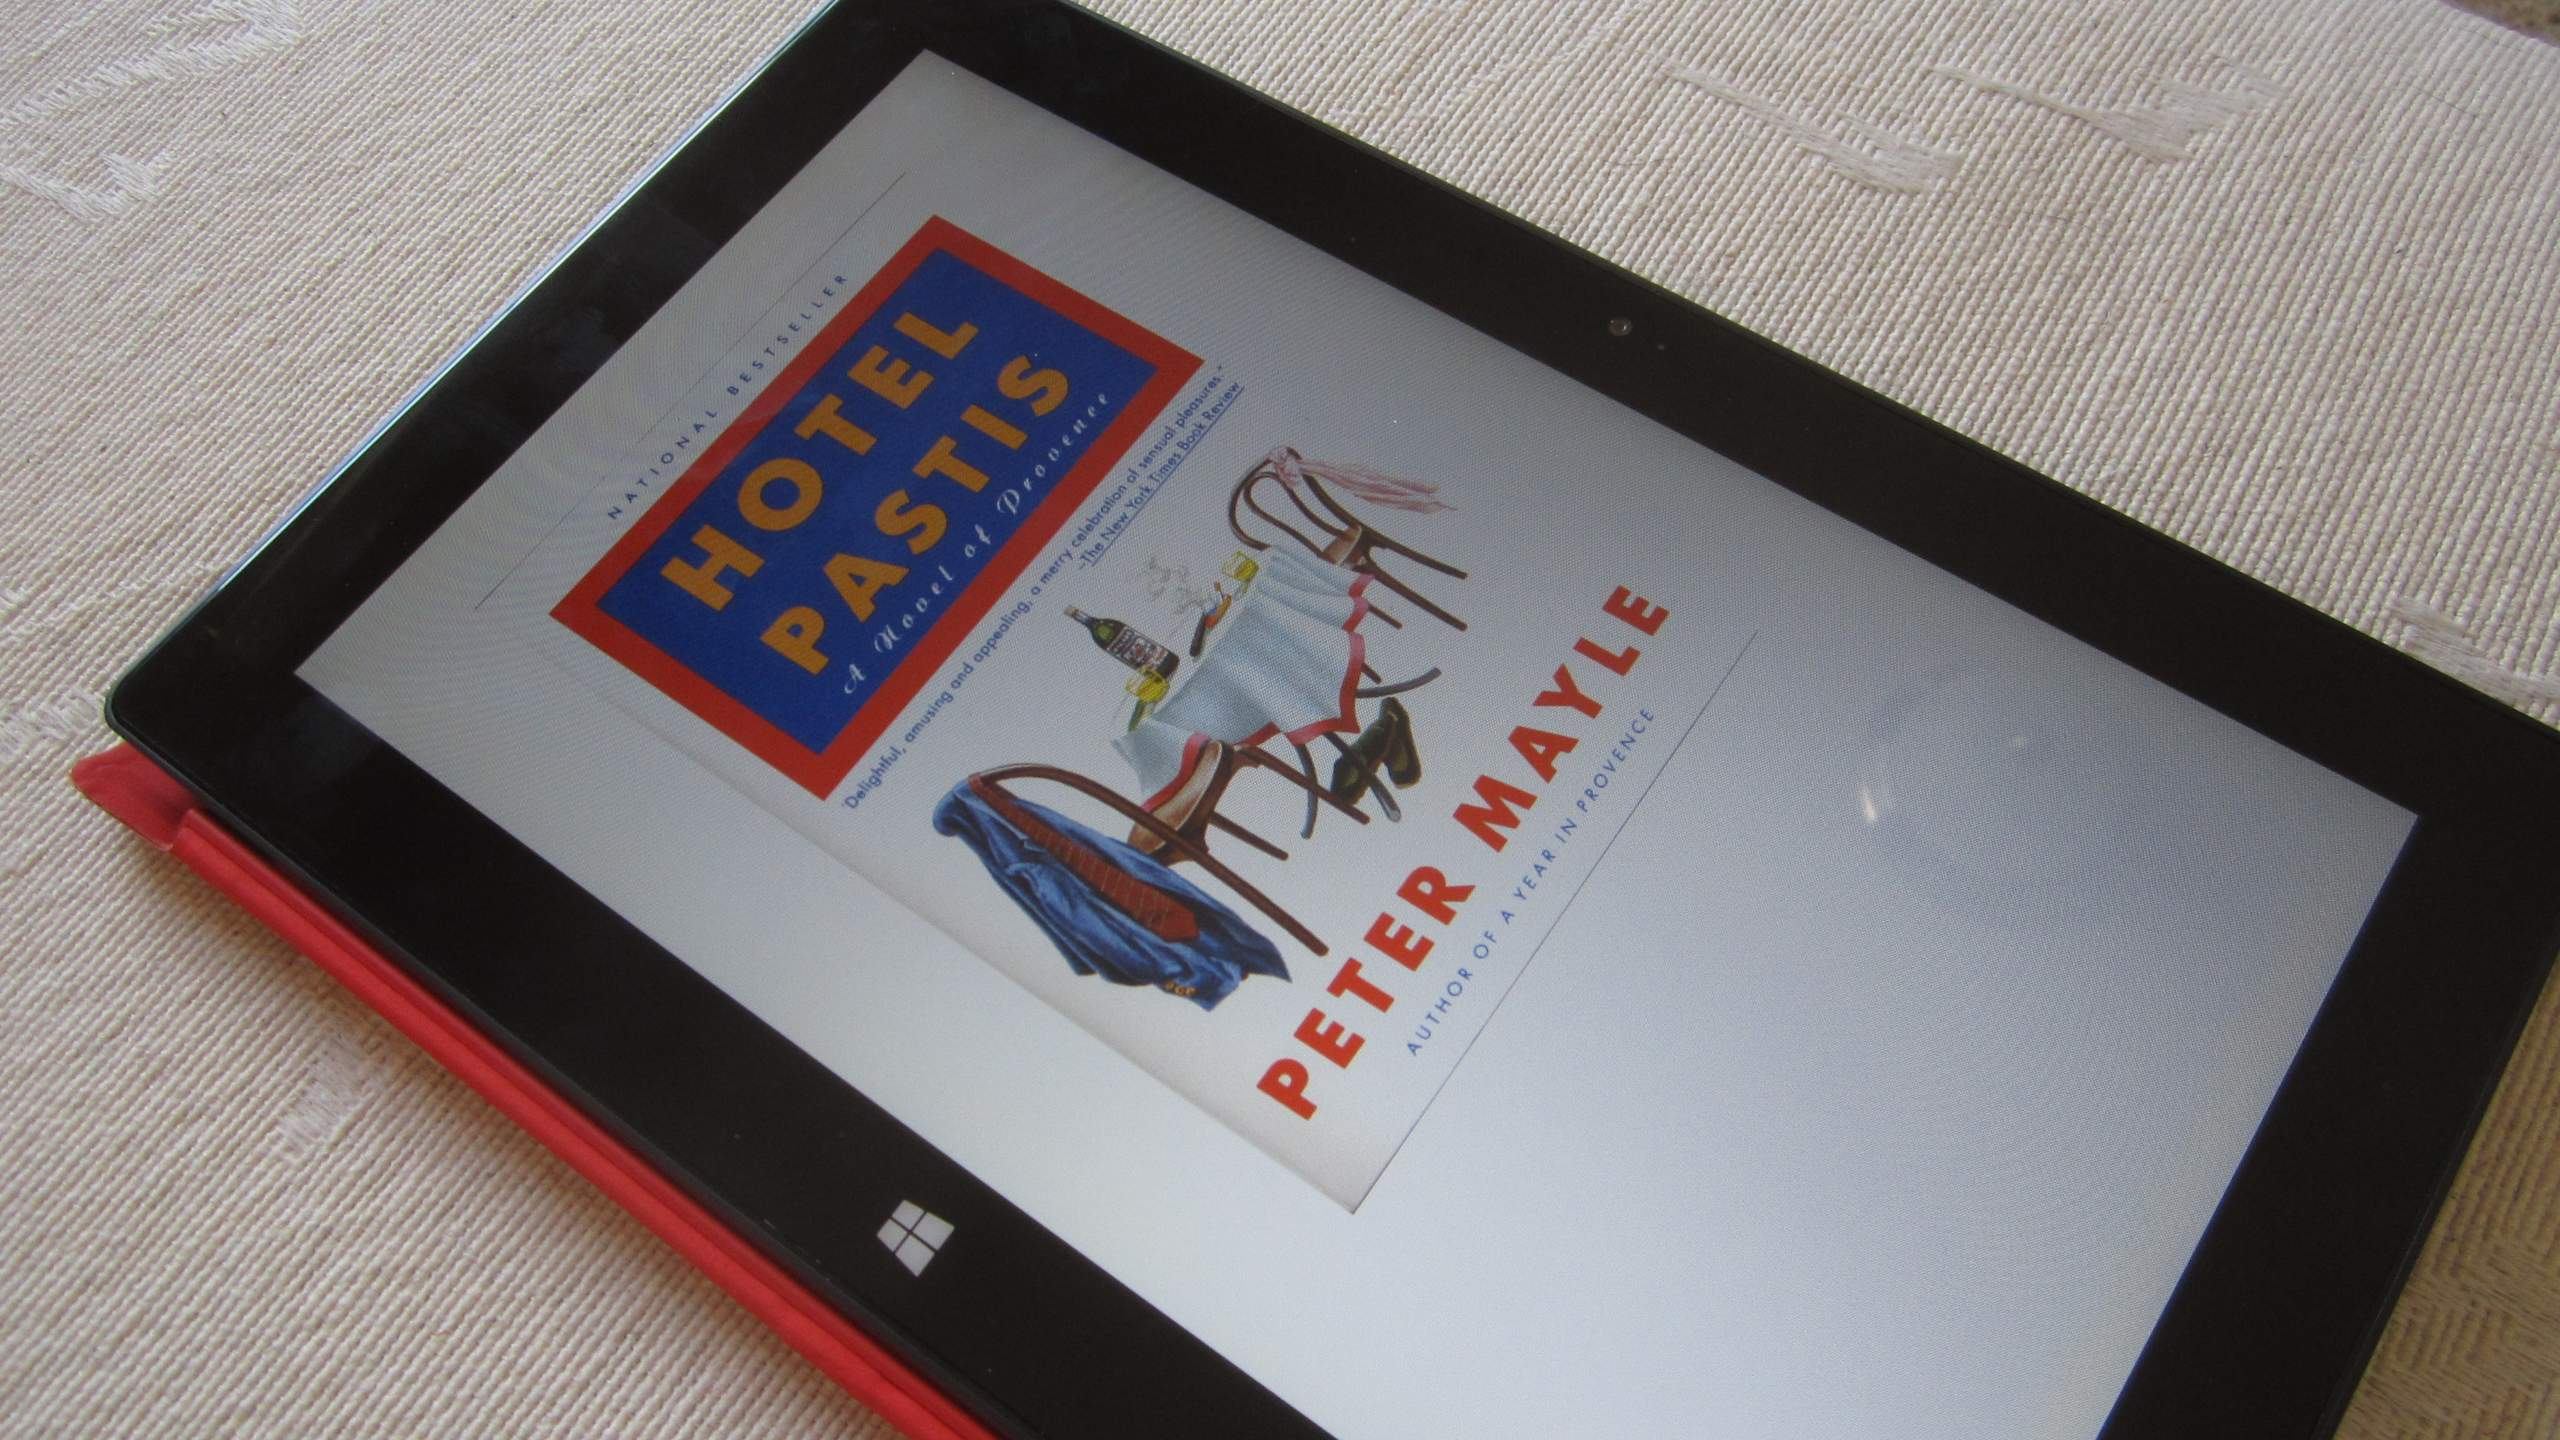 Featured photo for Hotel Pastis, by Peter Mayle